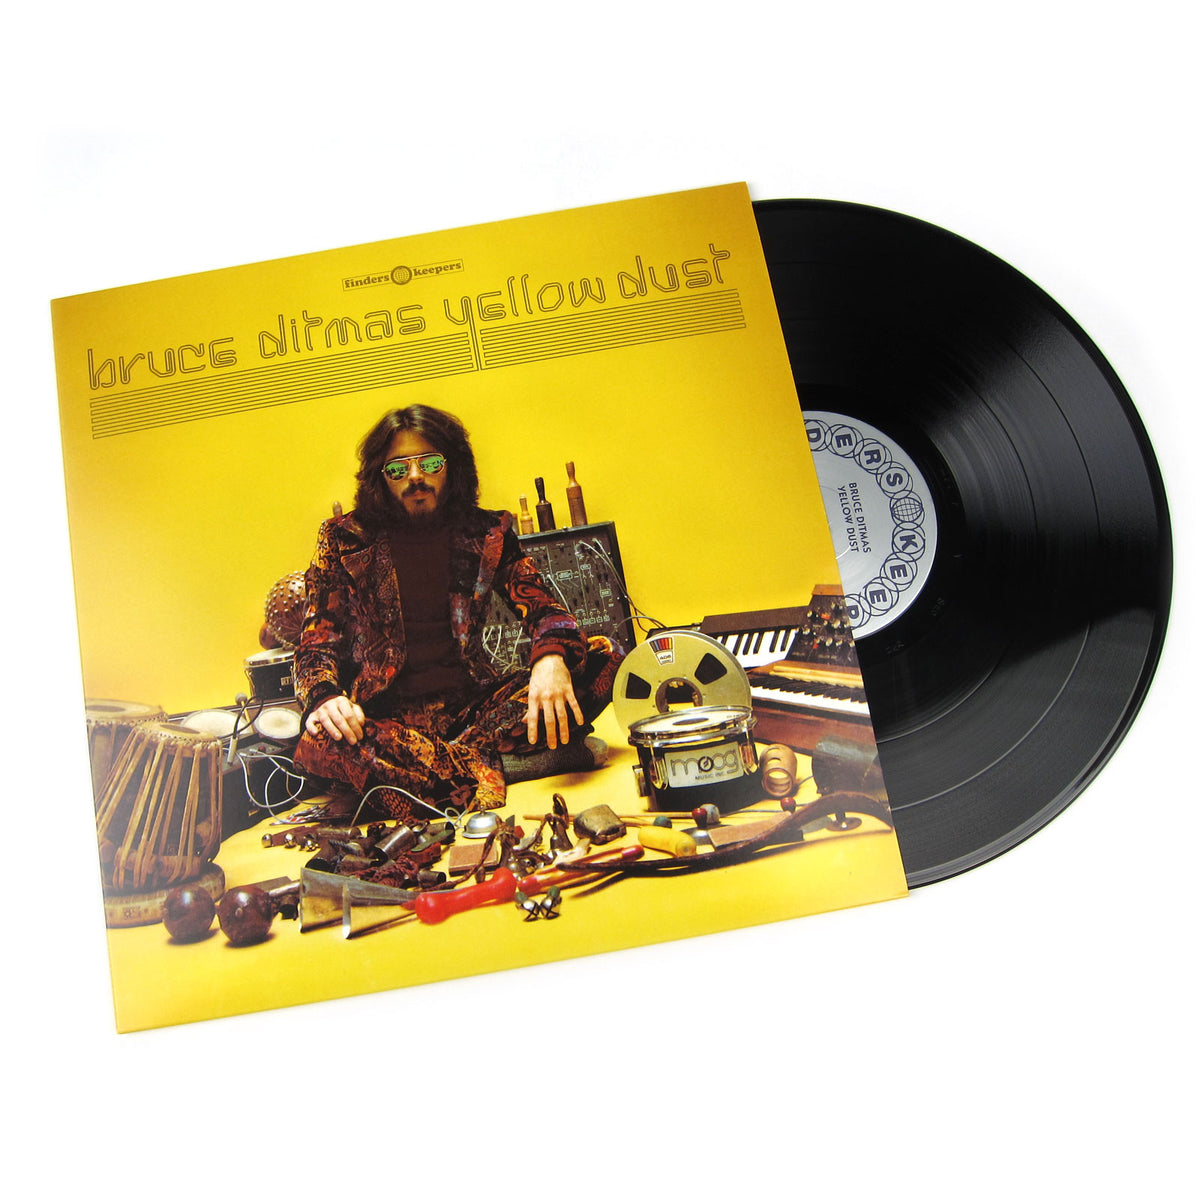 Bruce Ditmas: Yellow Dust Vinyl LP